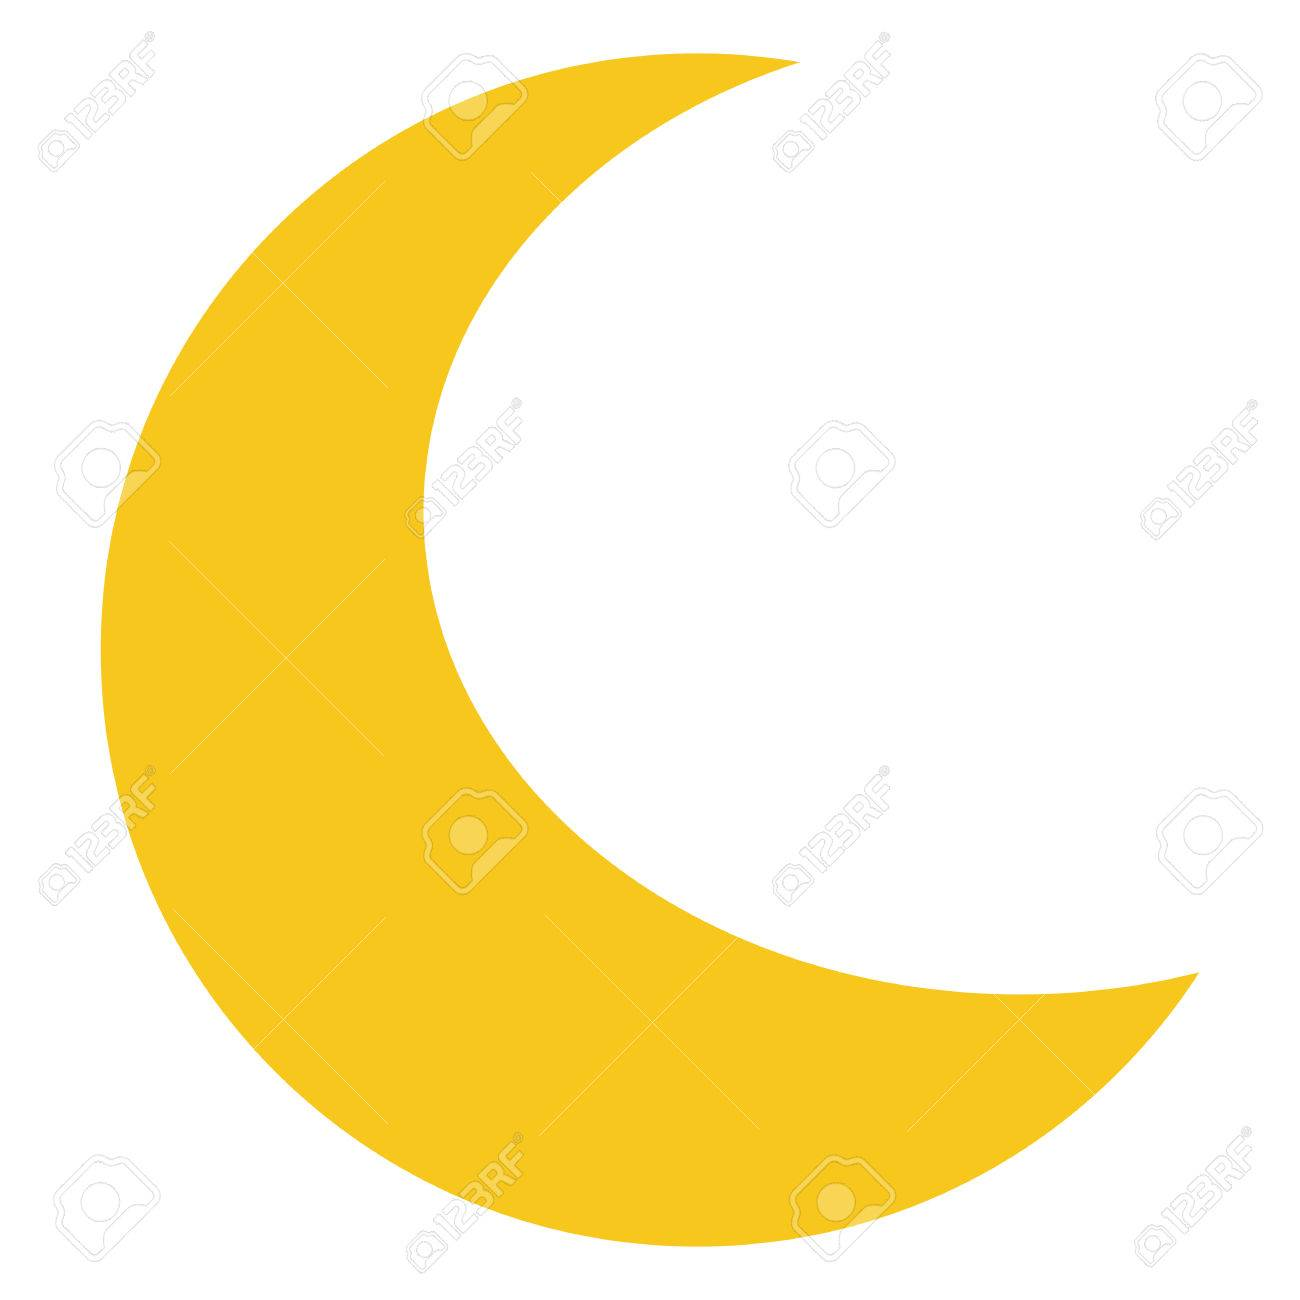 Yellow Moon icon isolated on background. Modern flat pictogram, business, marketing, internet concept. Trendy Simple vector symbol for web site design or button to mobile app. illustration - 59872797